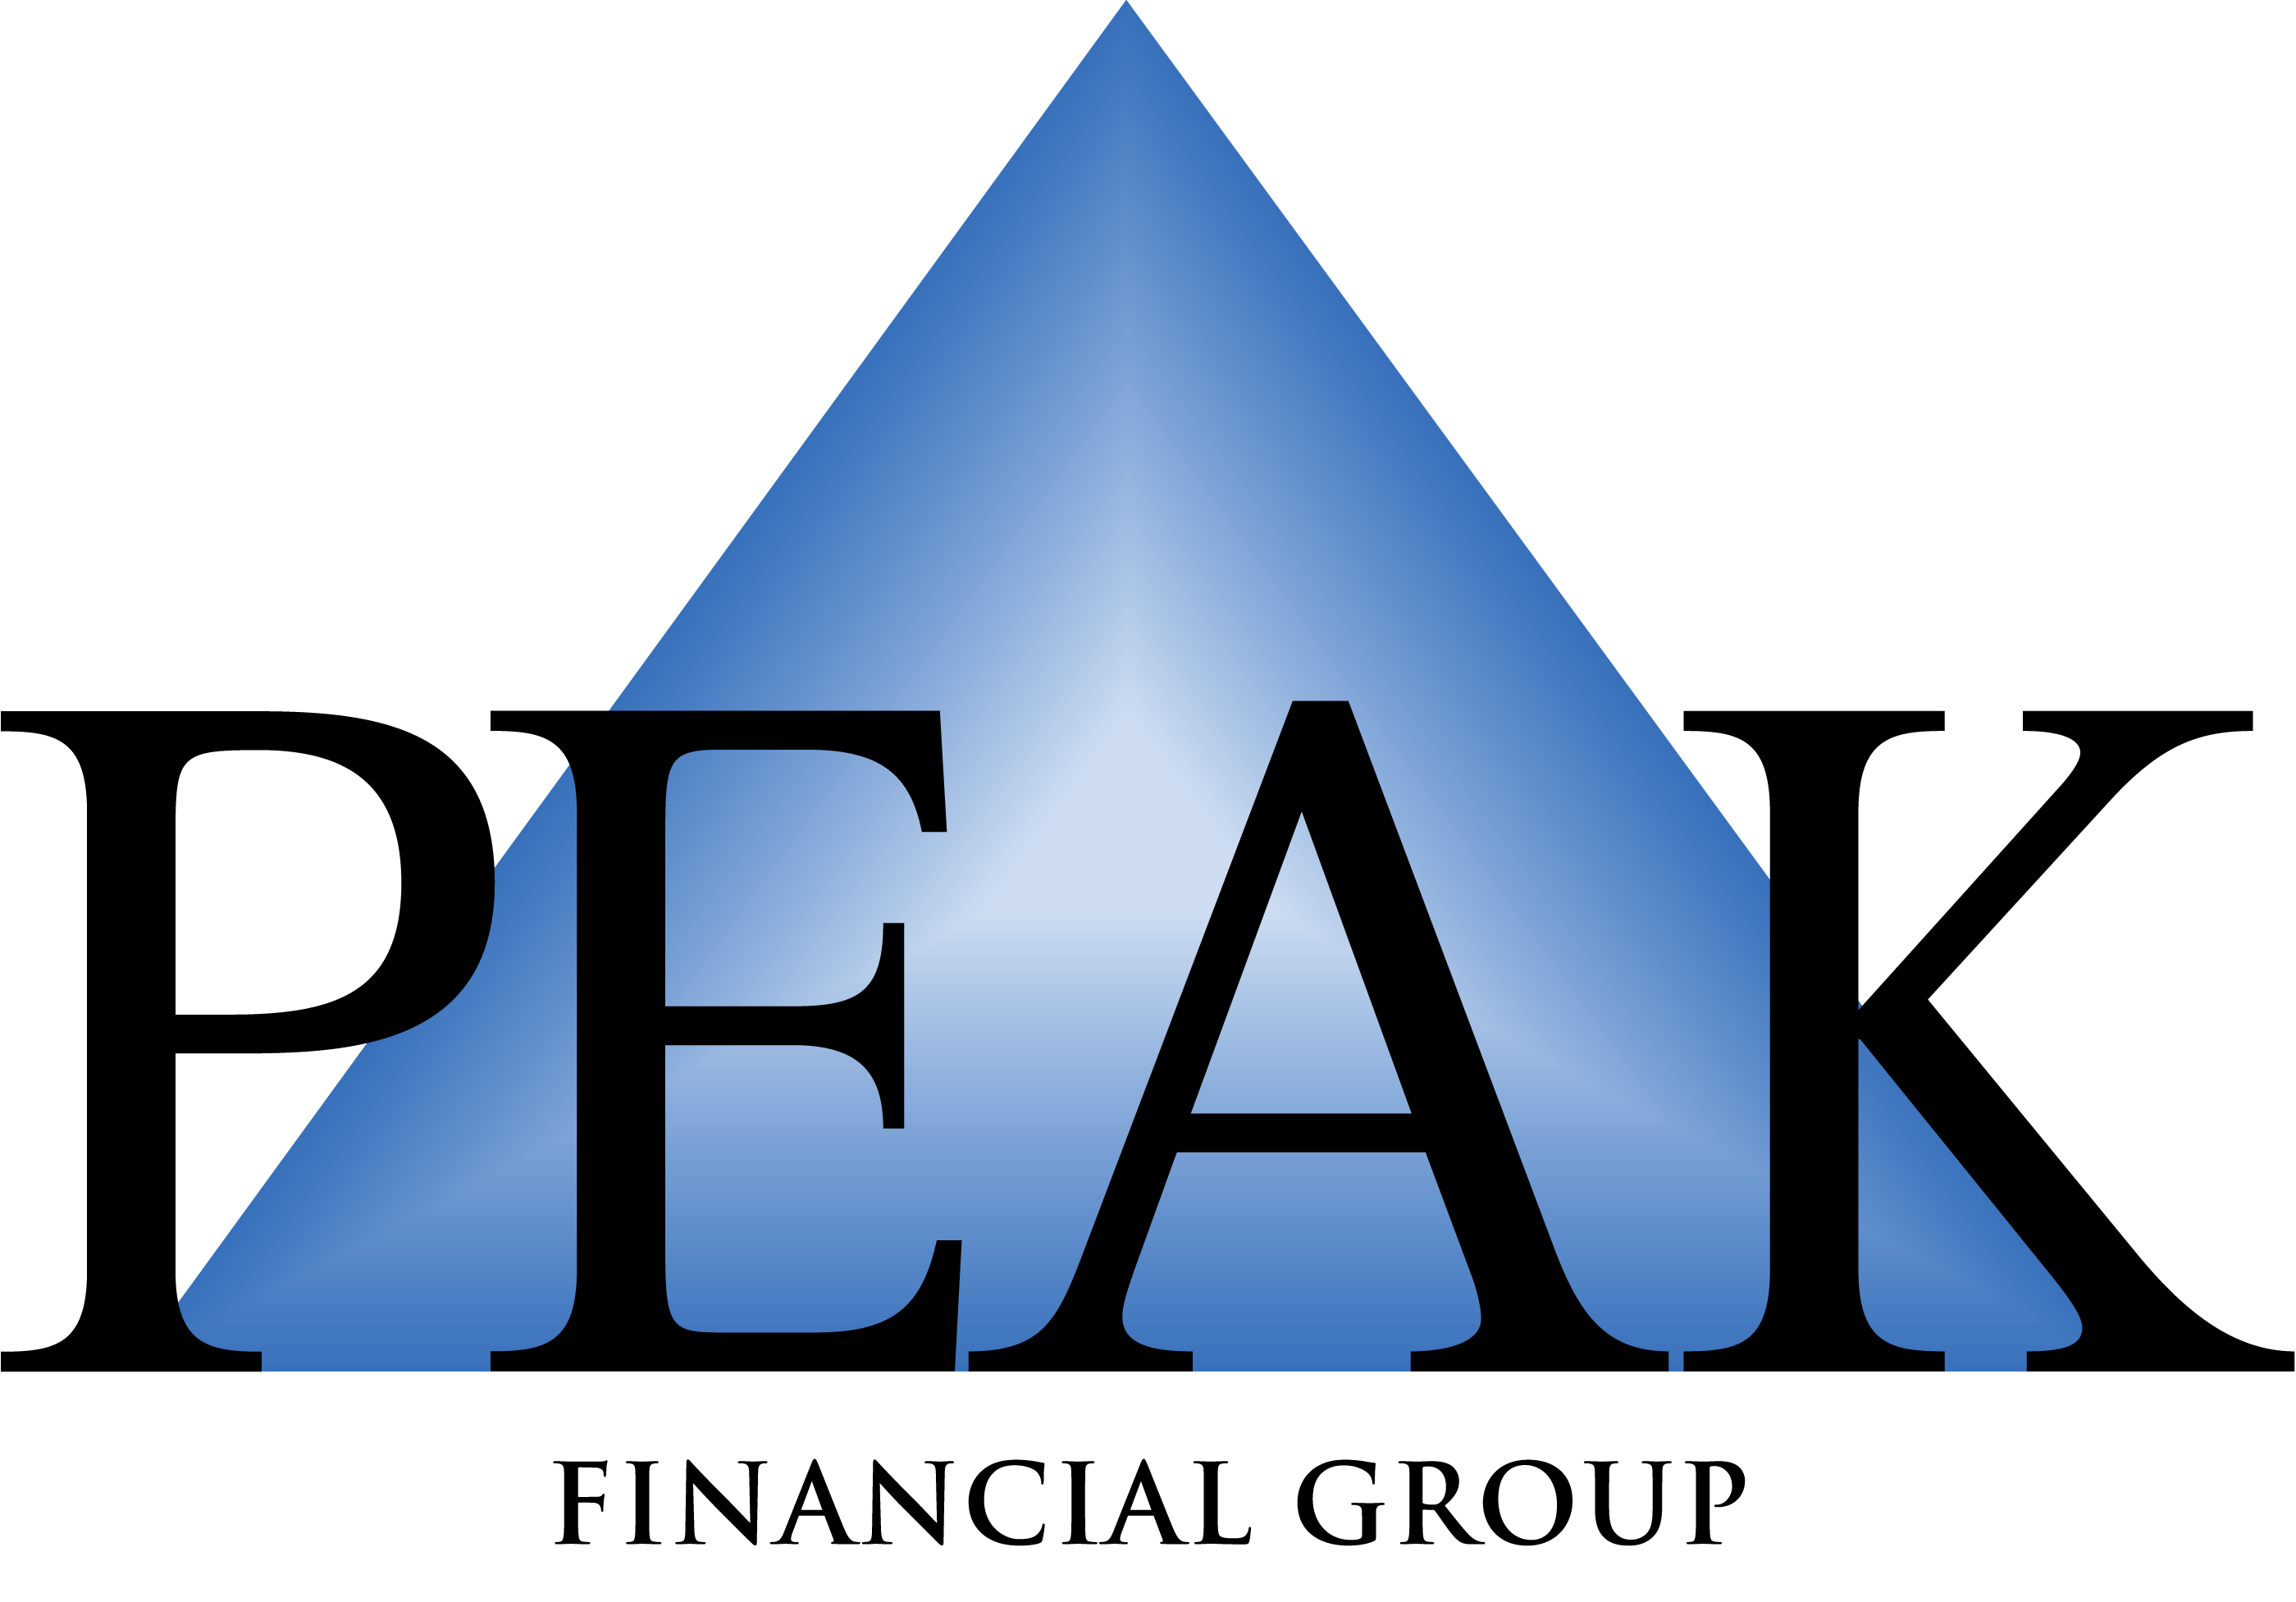 Peak Financials